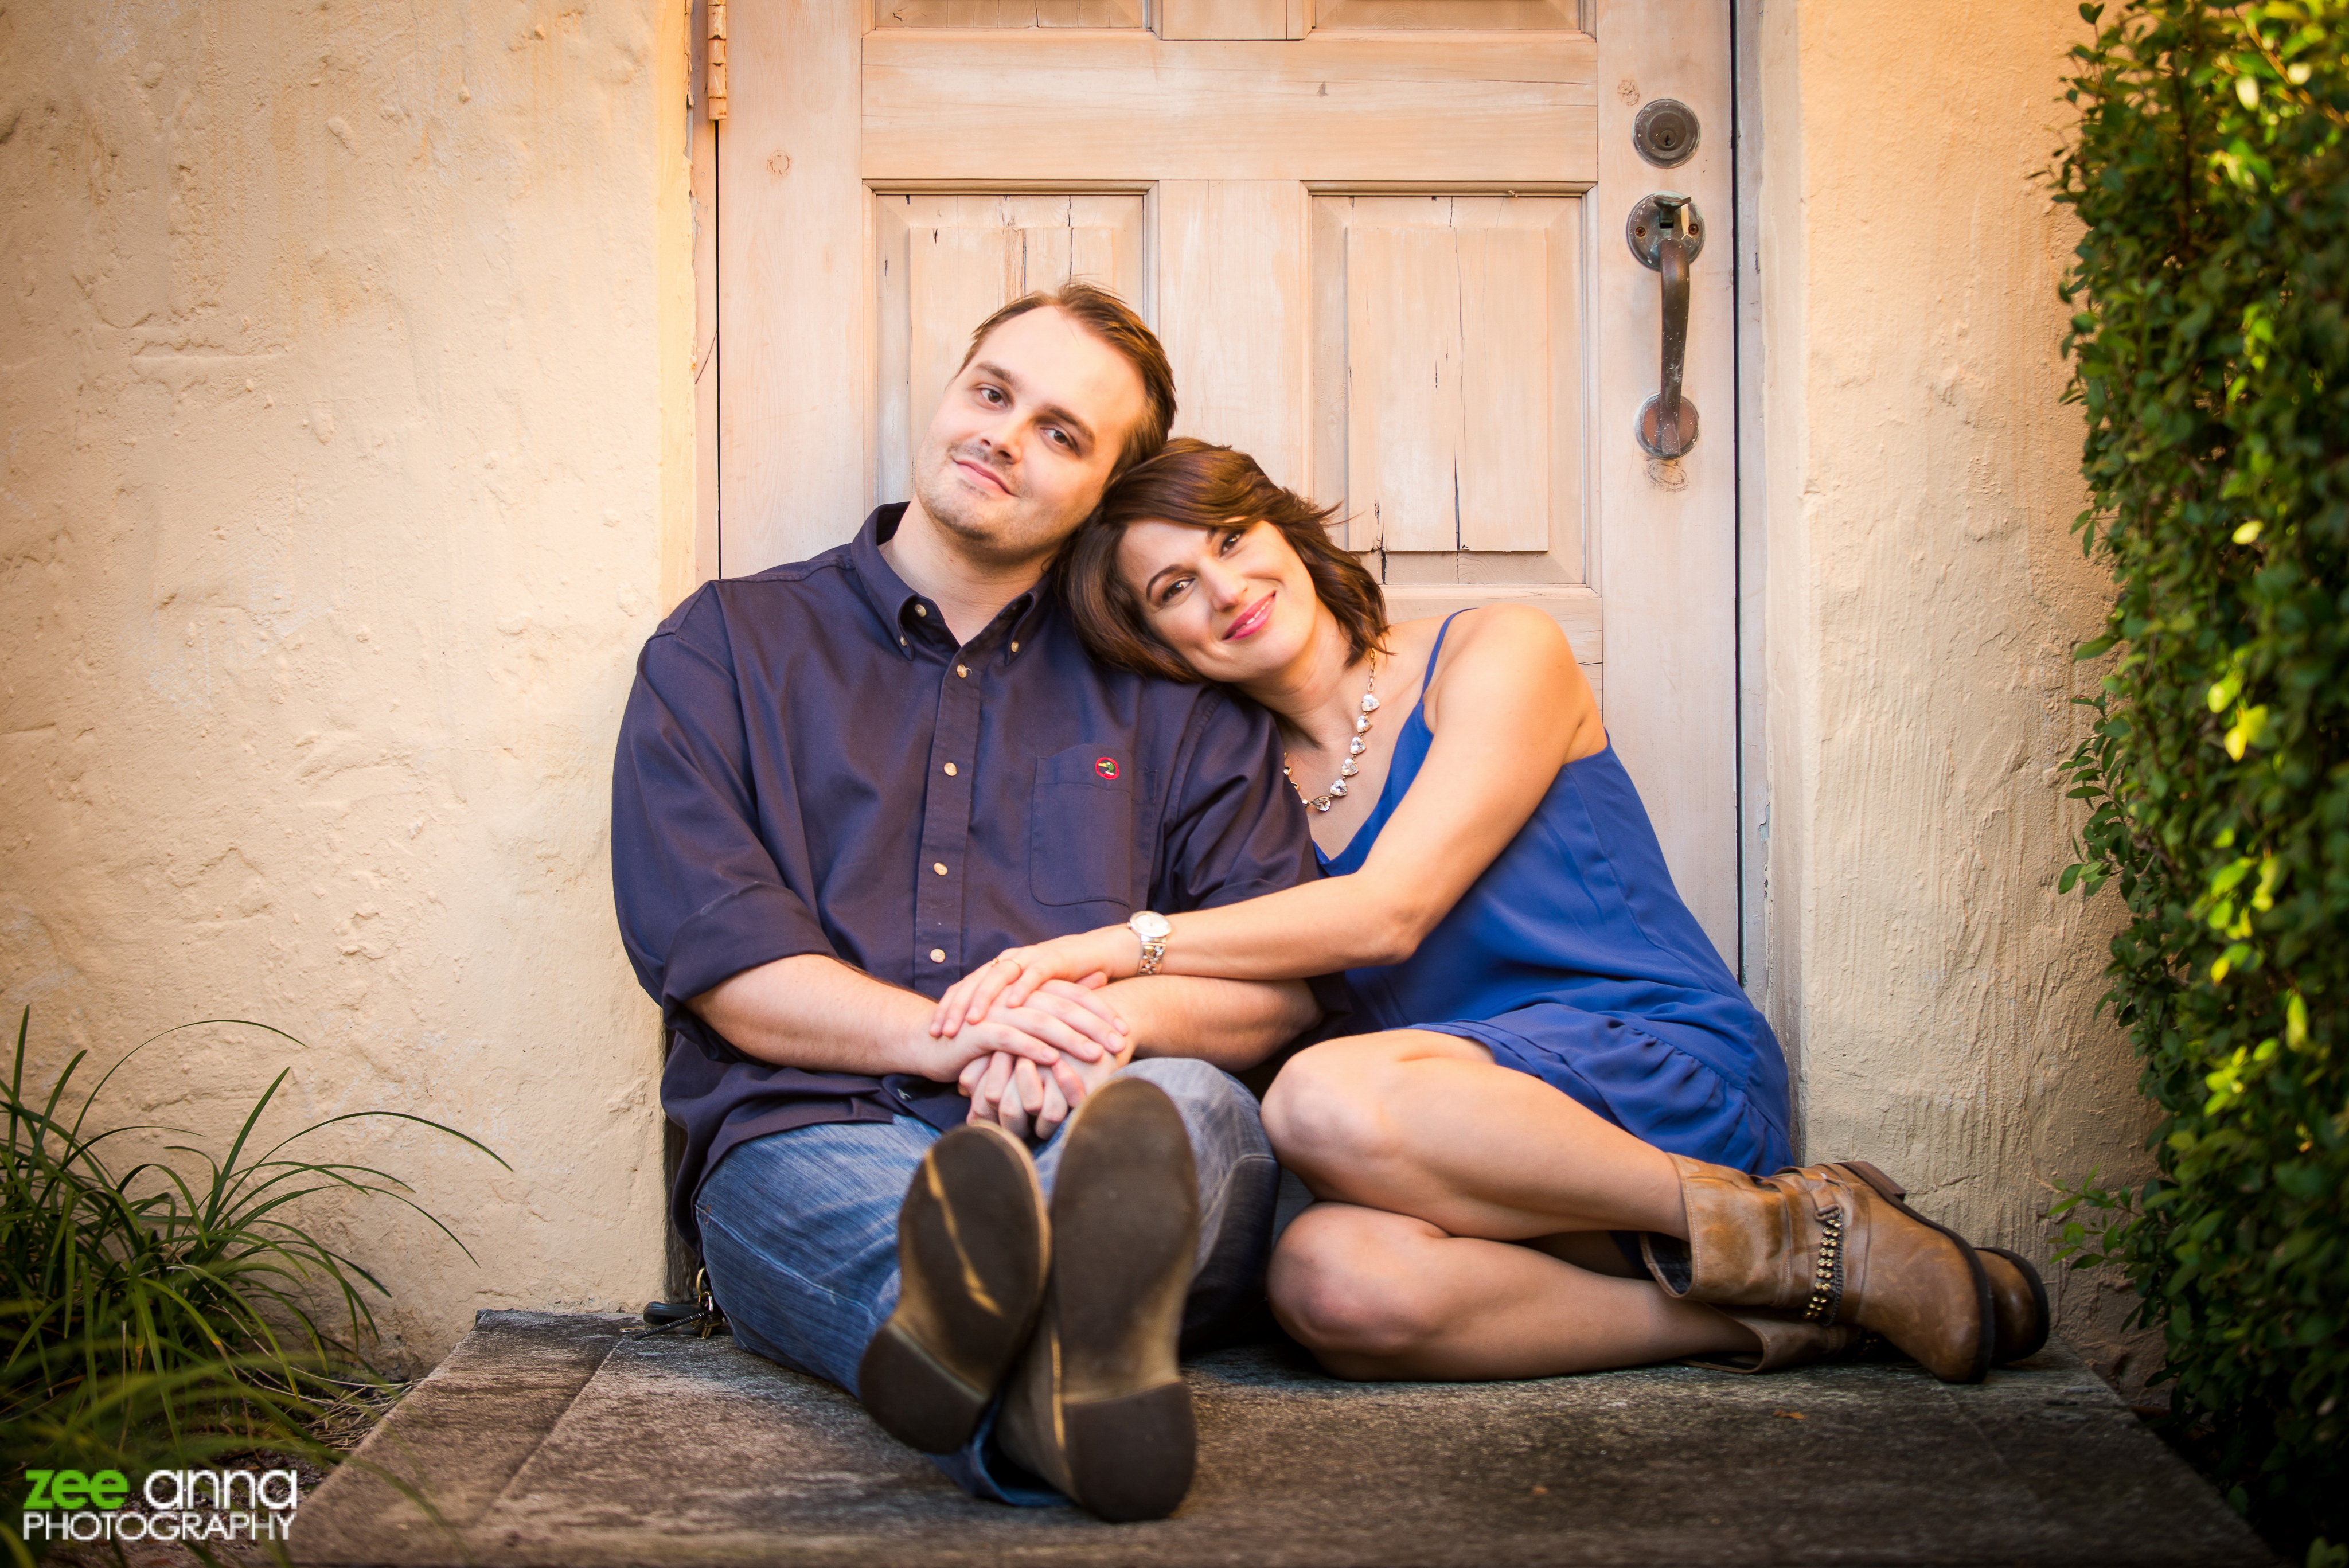 Jason+Tabitha-Engagement_01122014_113-113